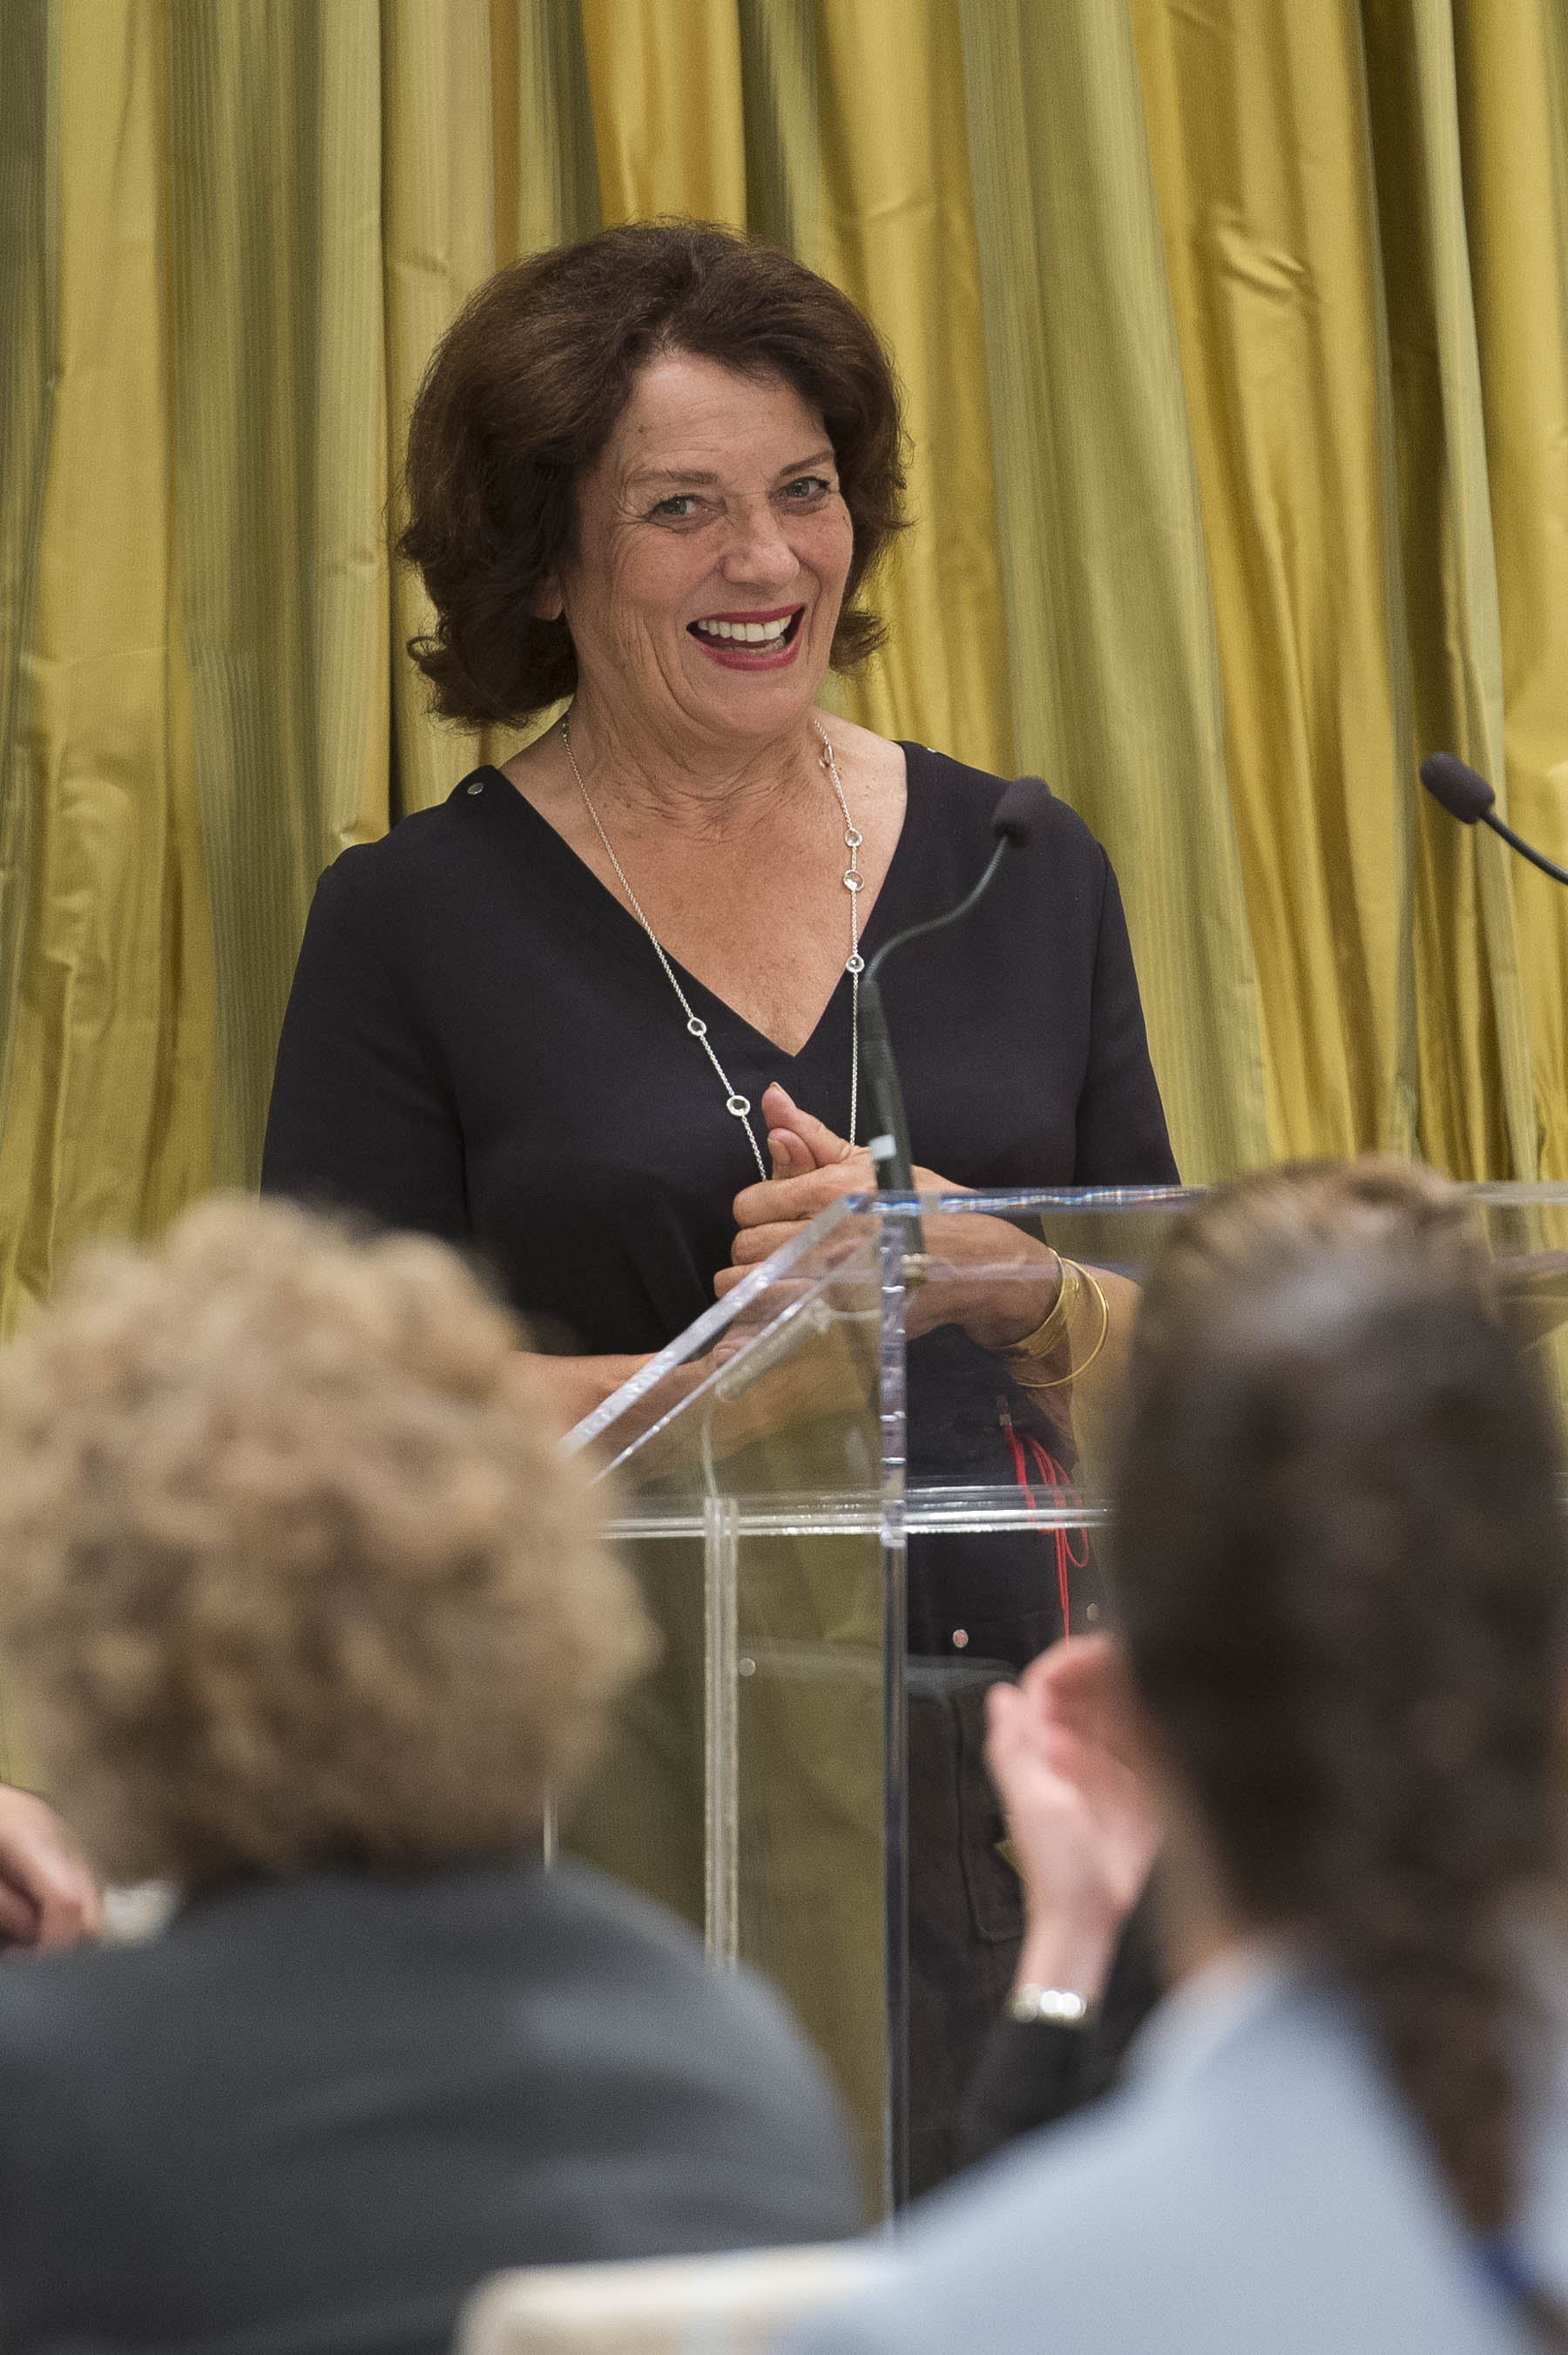 Keynote speaker and ambassador for mental health Ms. Margaret Trudeau spoke about her life journey.